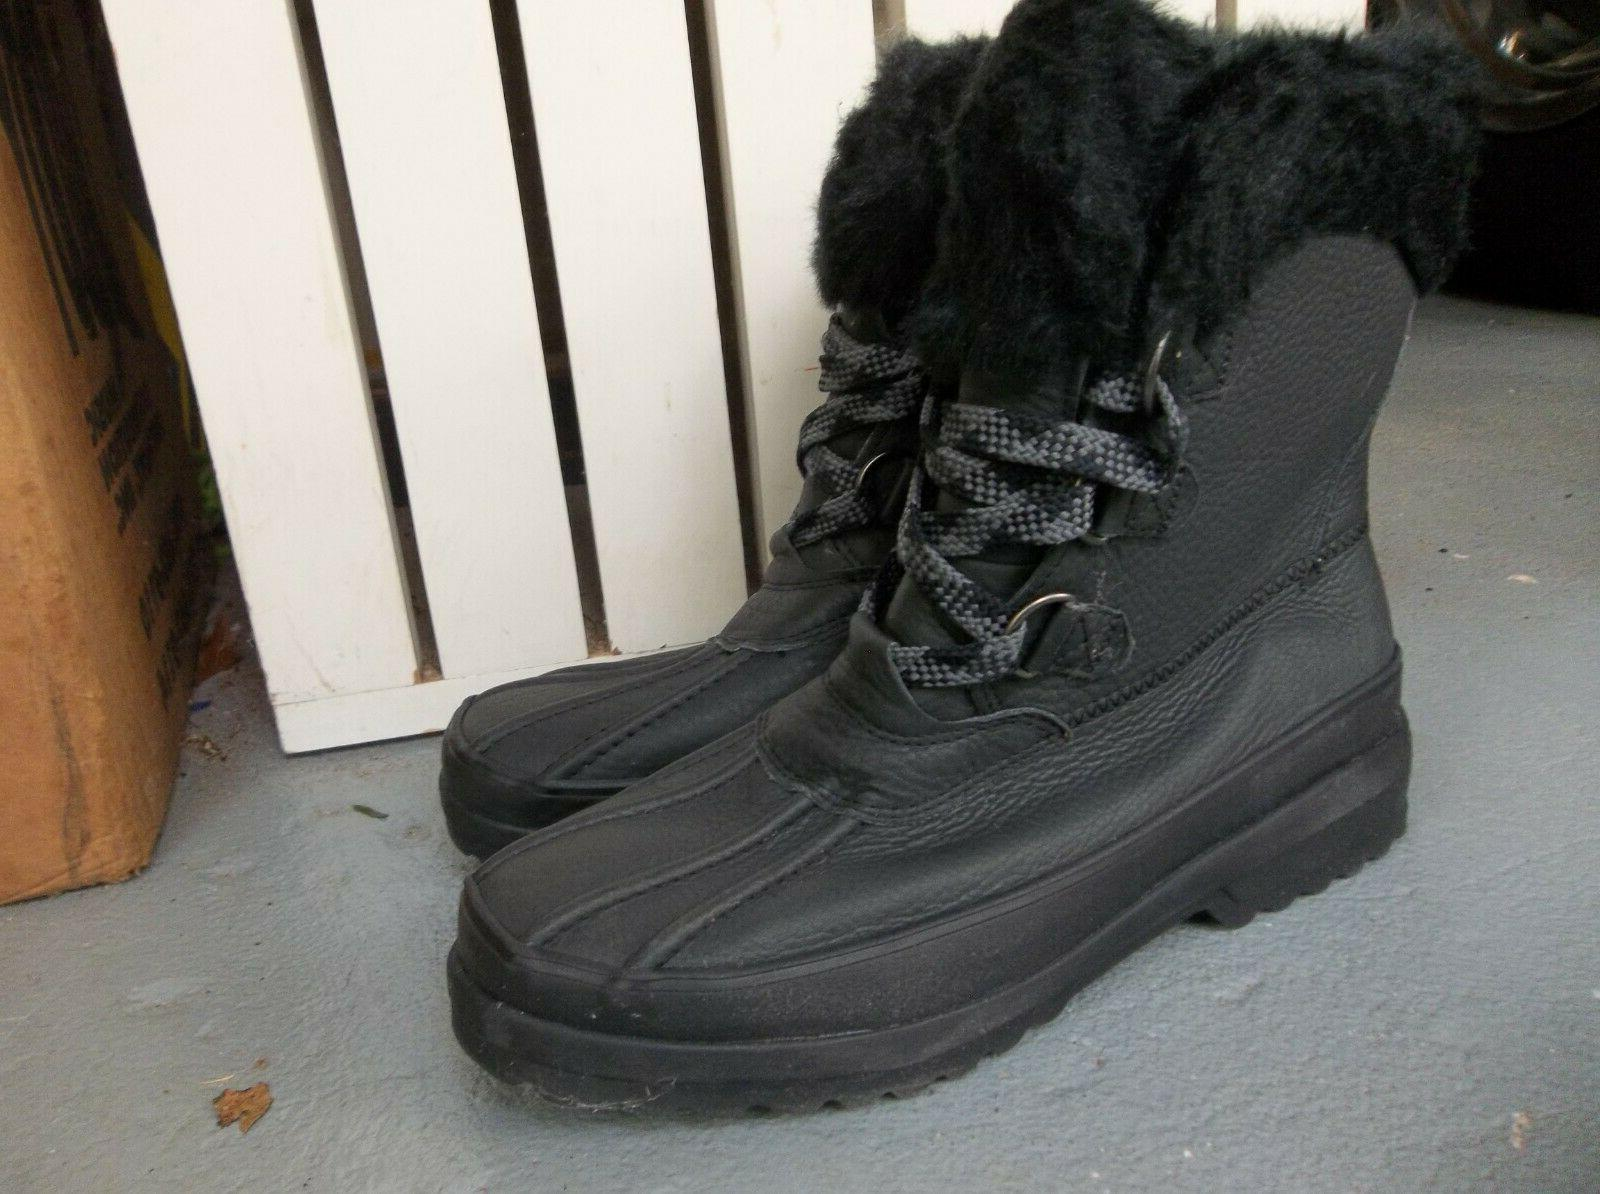 NEW WOMEN'S SPERRY TOP SIDER BOOTS.BLACK.SIZE 7.2019